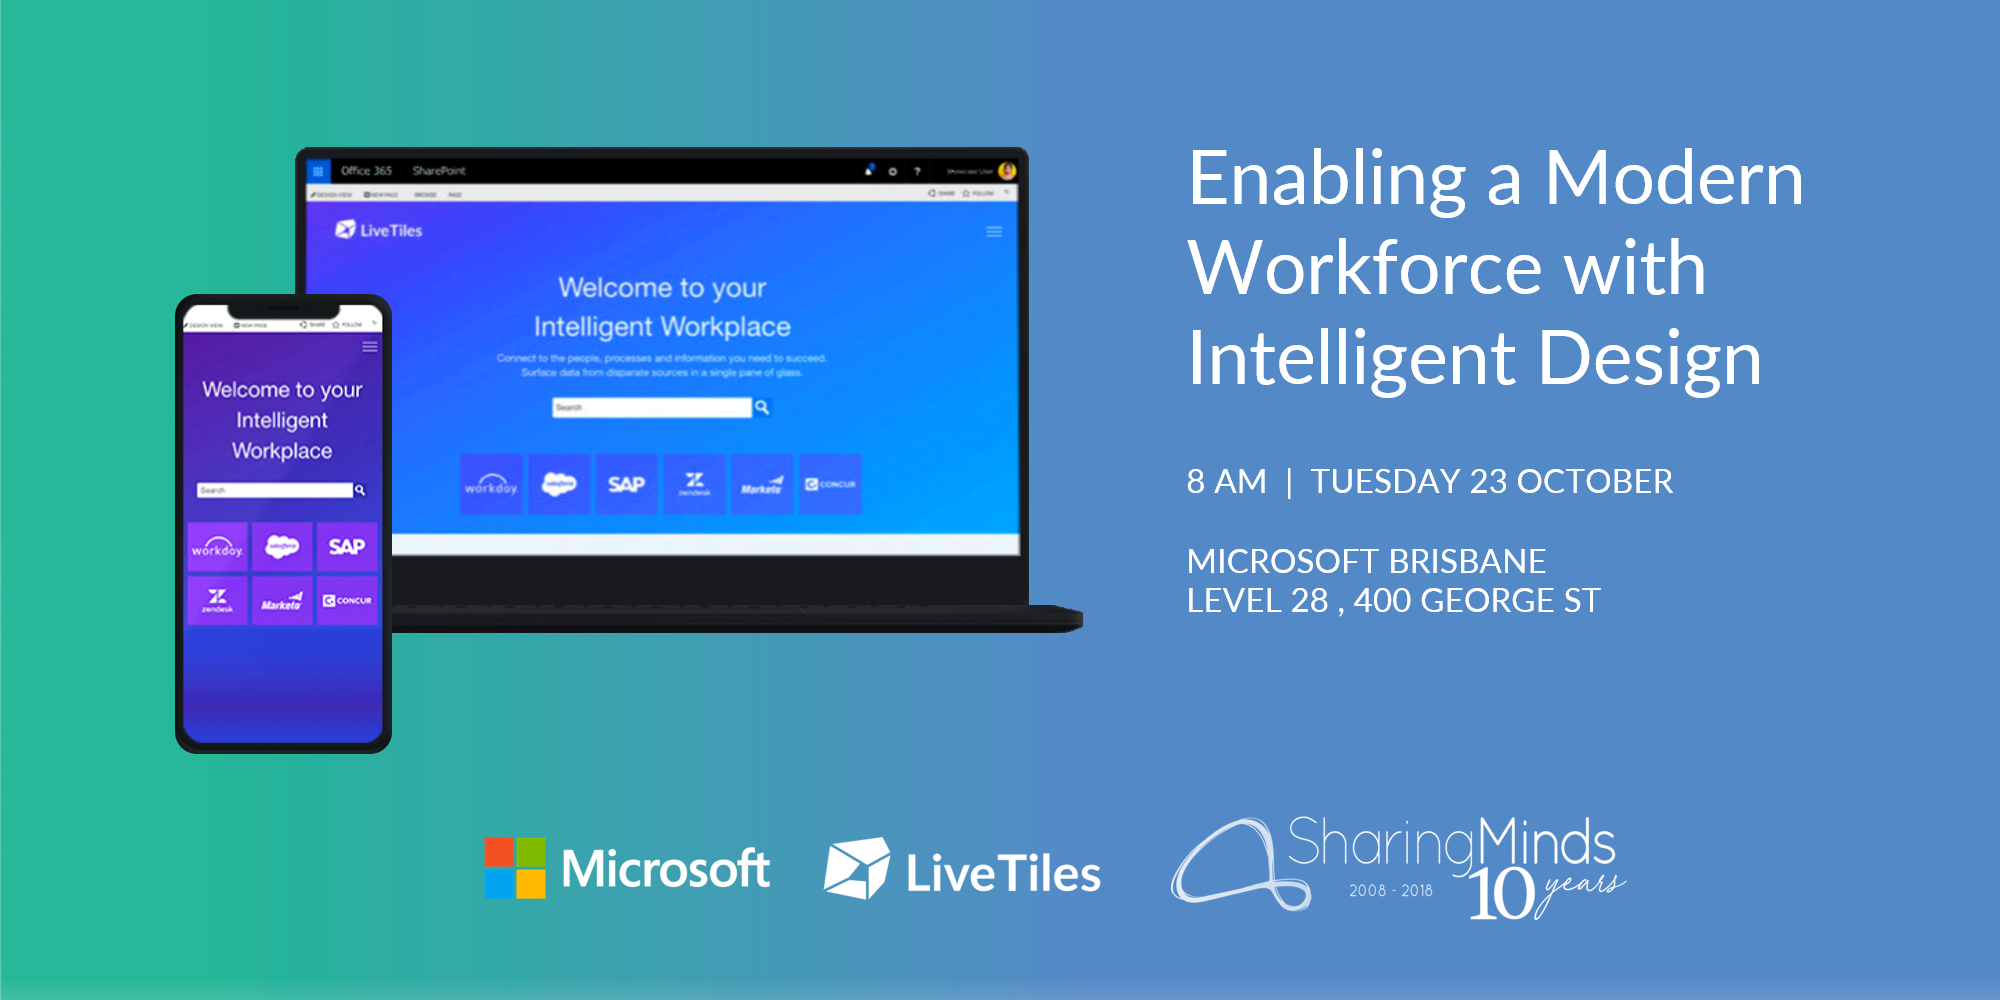 LiveTiles Microsoft Sharing Minds - Breakfast event 23 Oct 2018